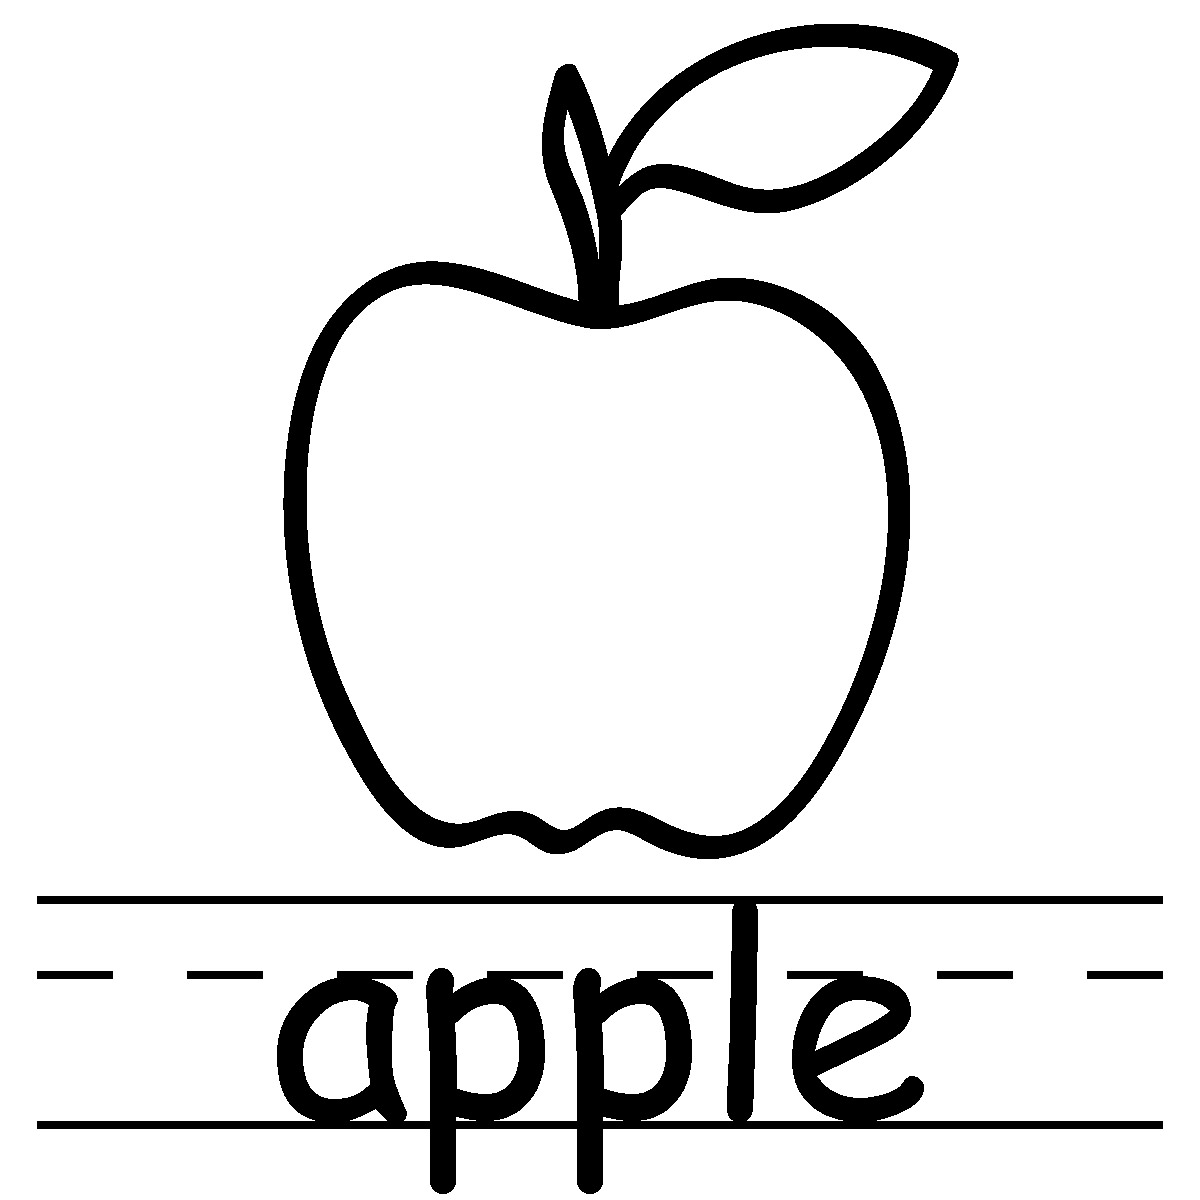 ... Apple Clipart Black And White | Clipart Panda - Free Clipart Images